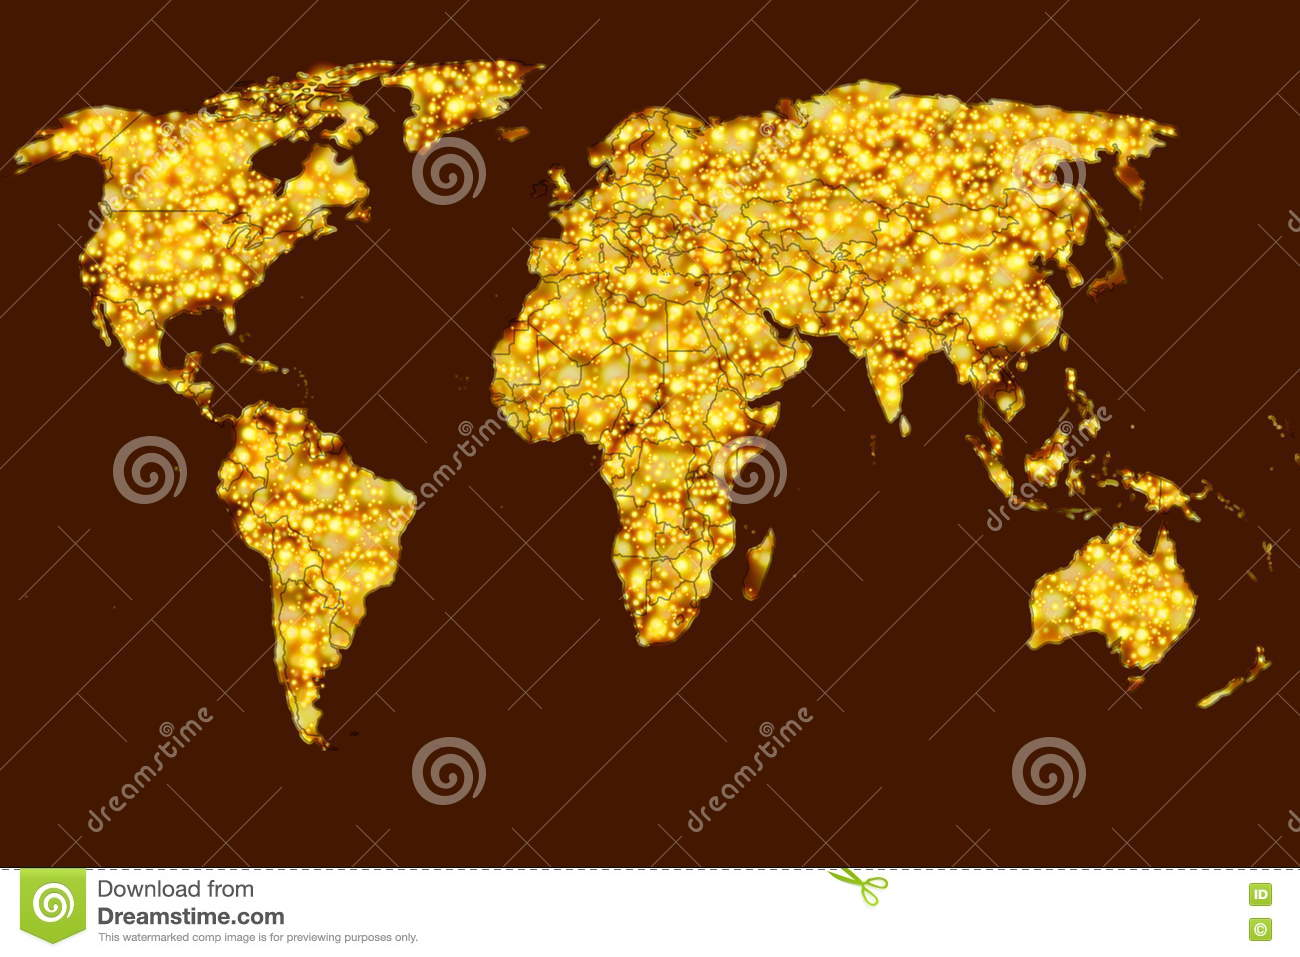 Glowing light world map in background stock illustration glowing light world map in background gumiabroncs Image collections